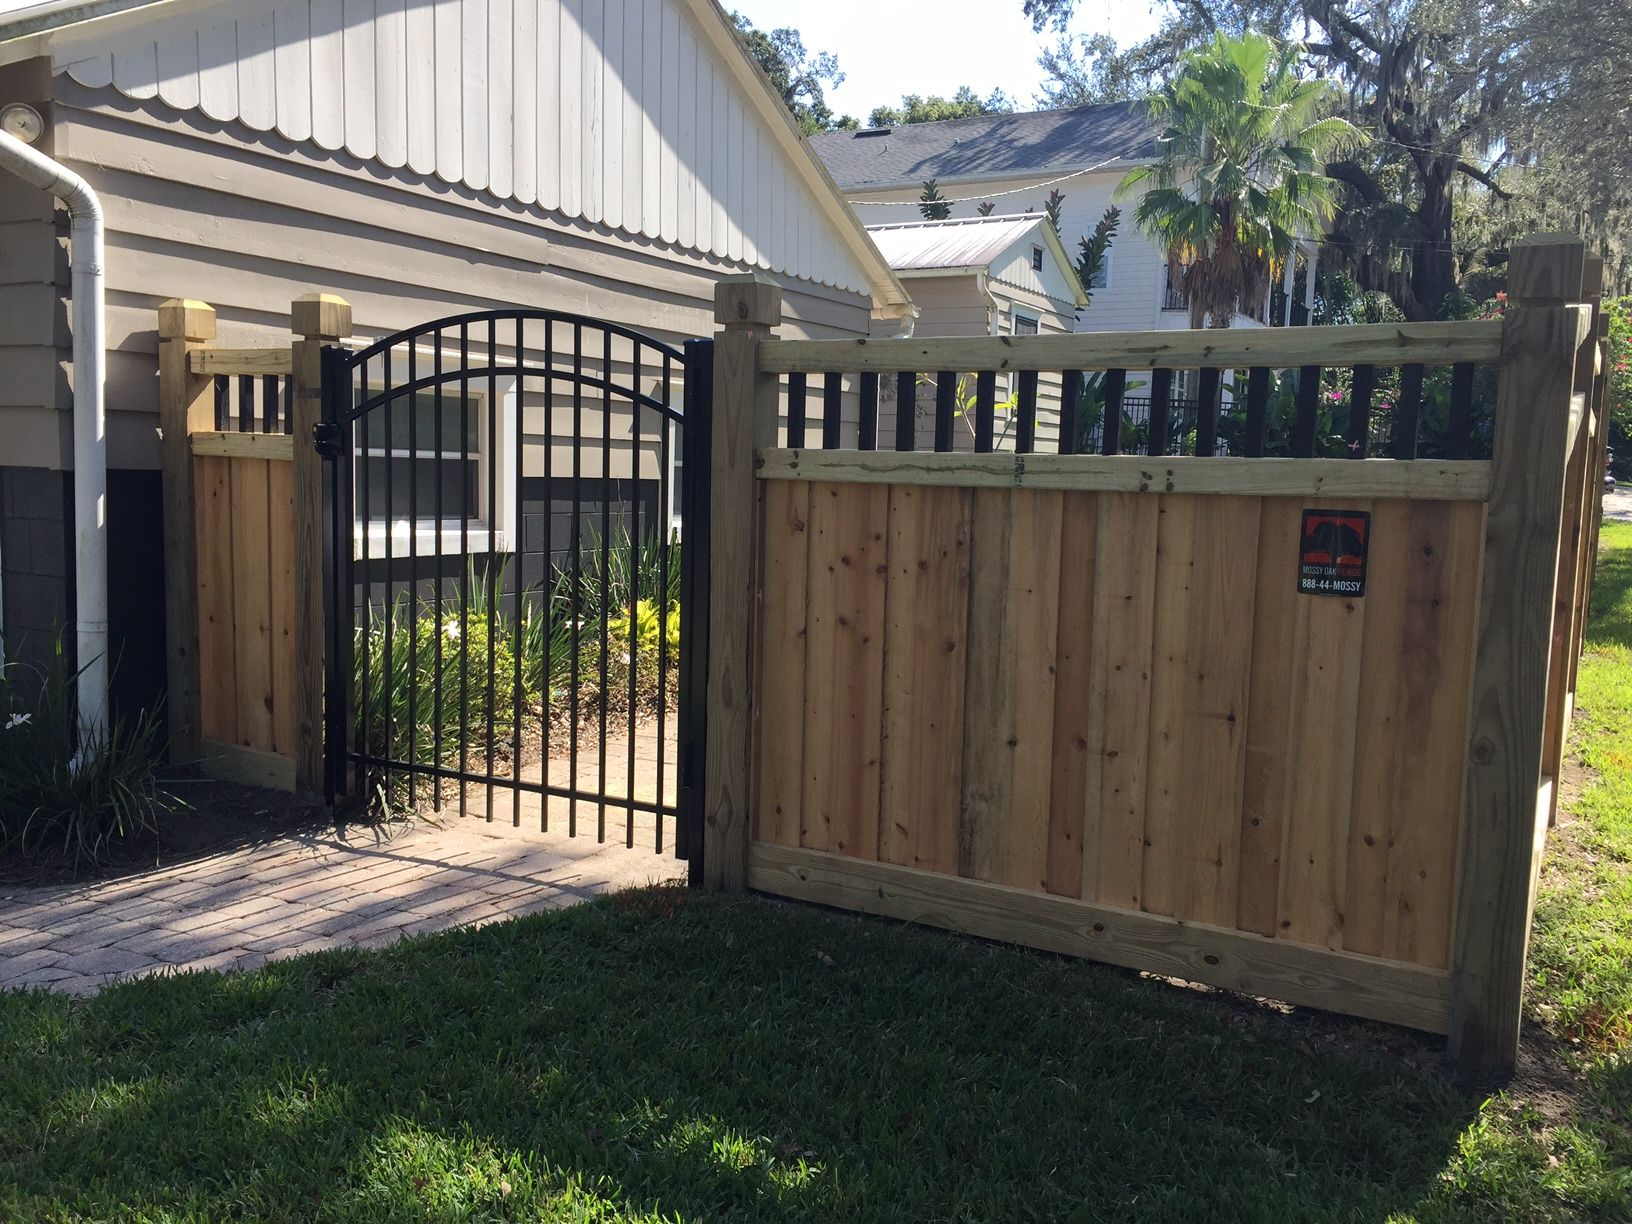 Gate And Fence Metal Garden Gates Steel Fence White Aluminum Wood Privacy Fence Metal Fence Gates Fence Design